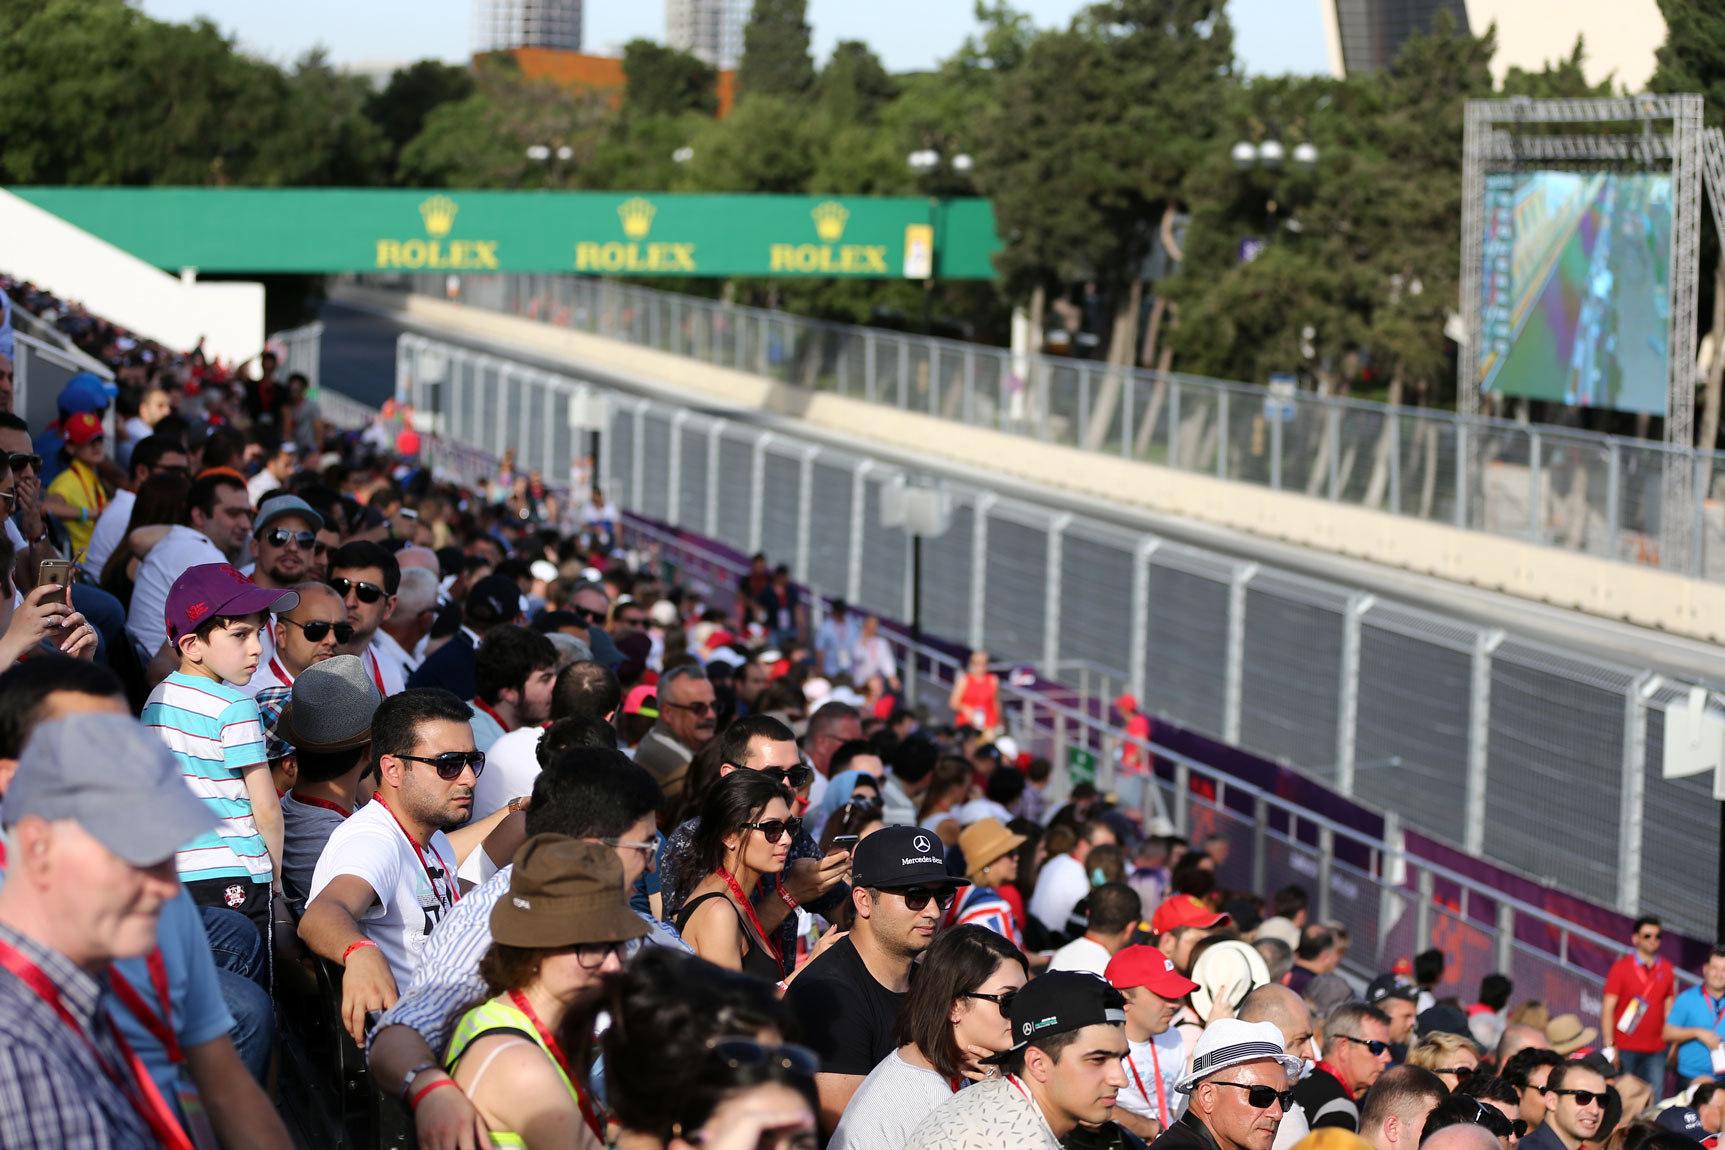 2019 Azerbaijan Grand Prix ficial Ticket Packages